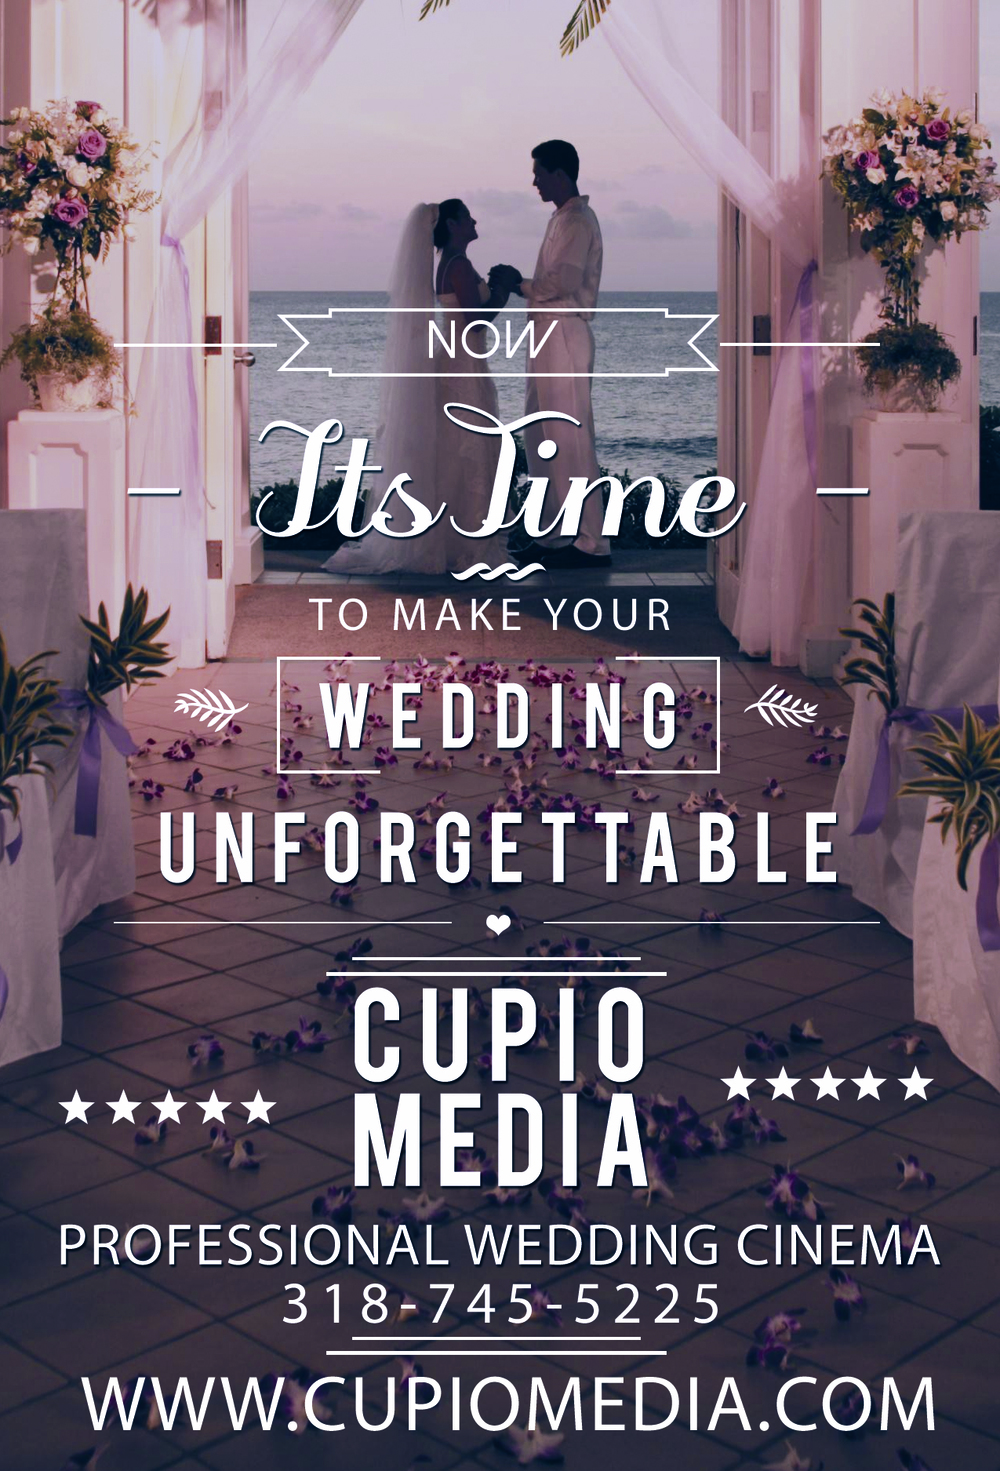 WEDDING AD.jpg